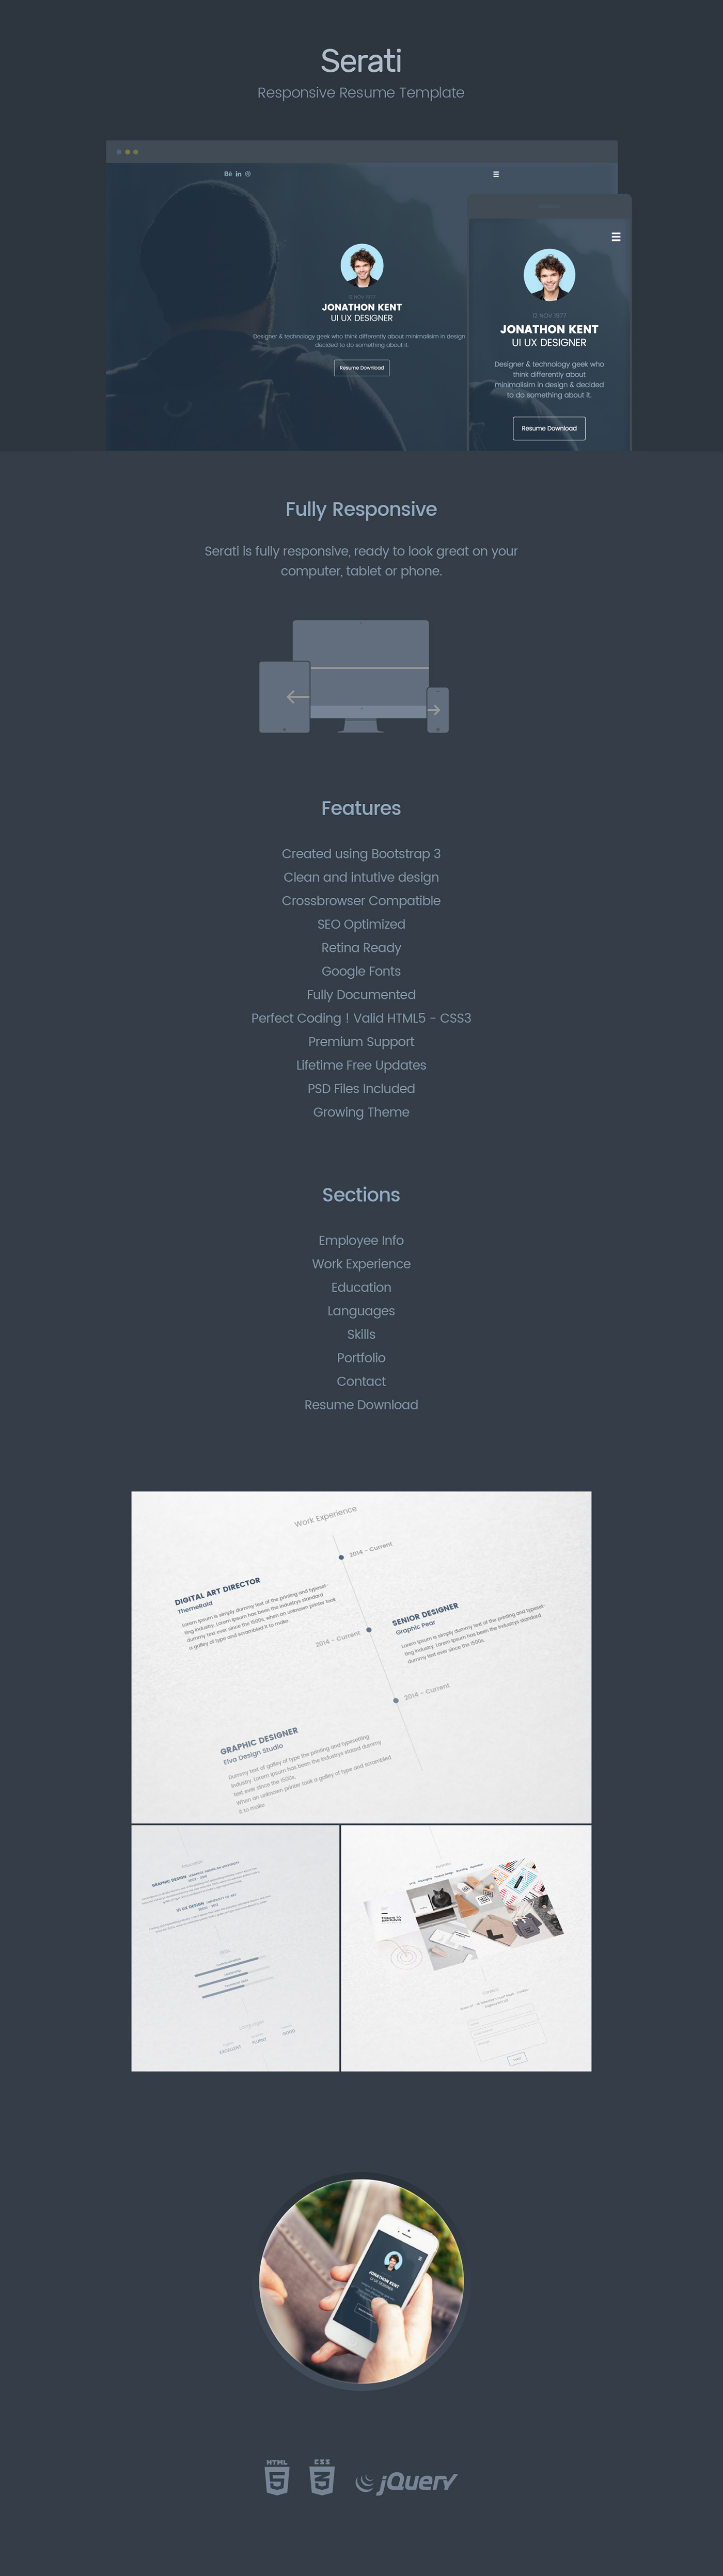 Serati free html resume template on behance yelopaper